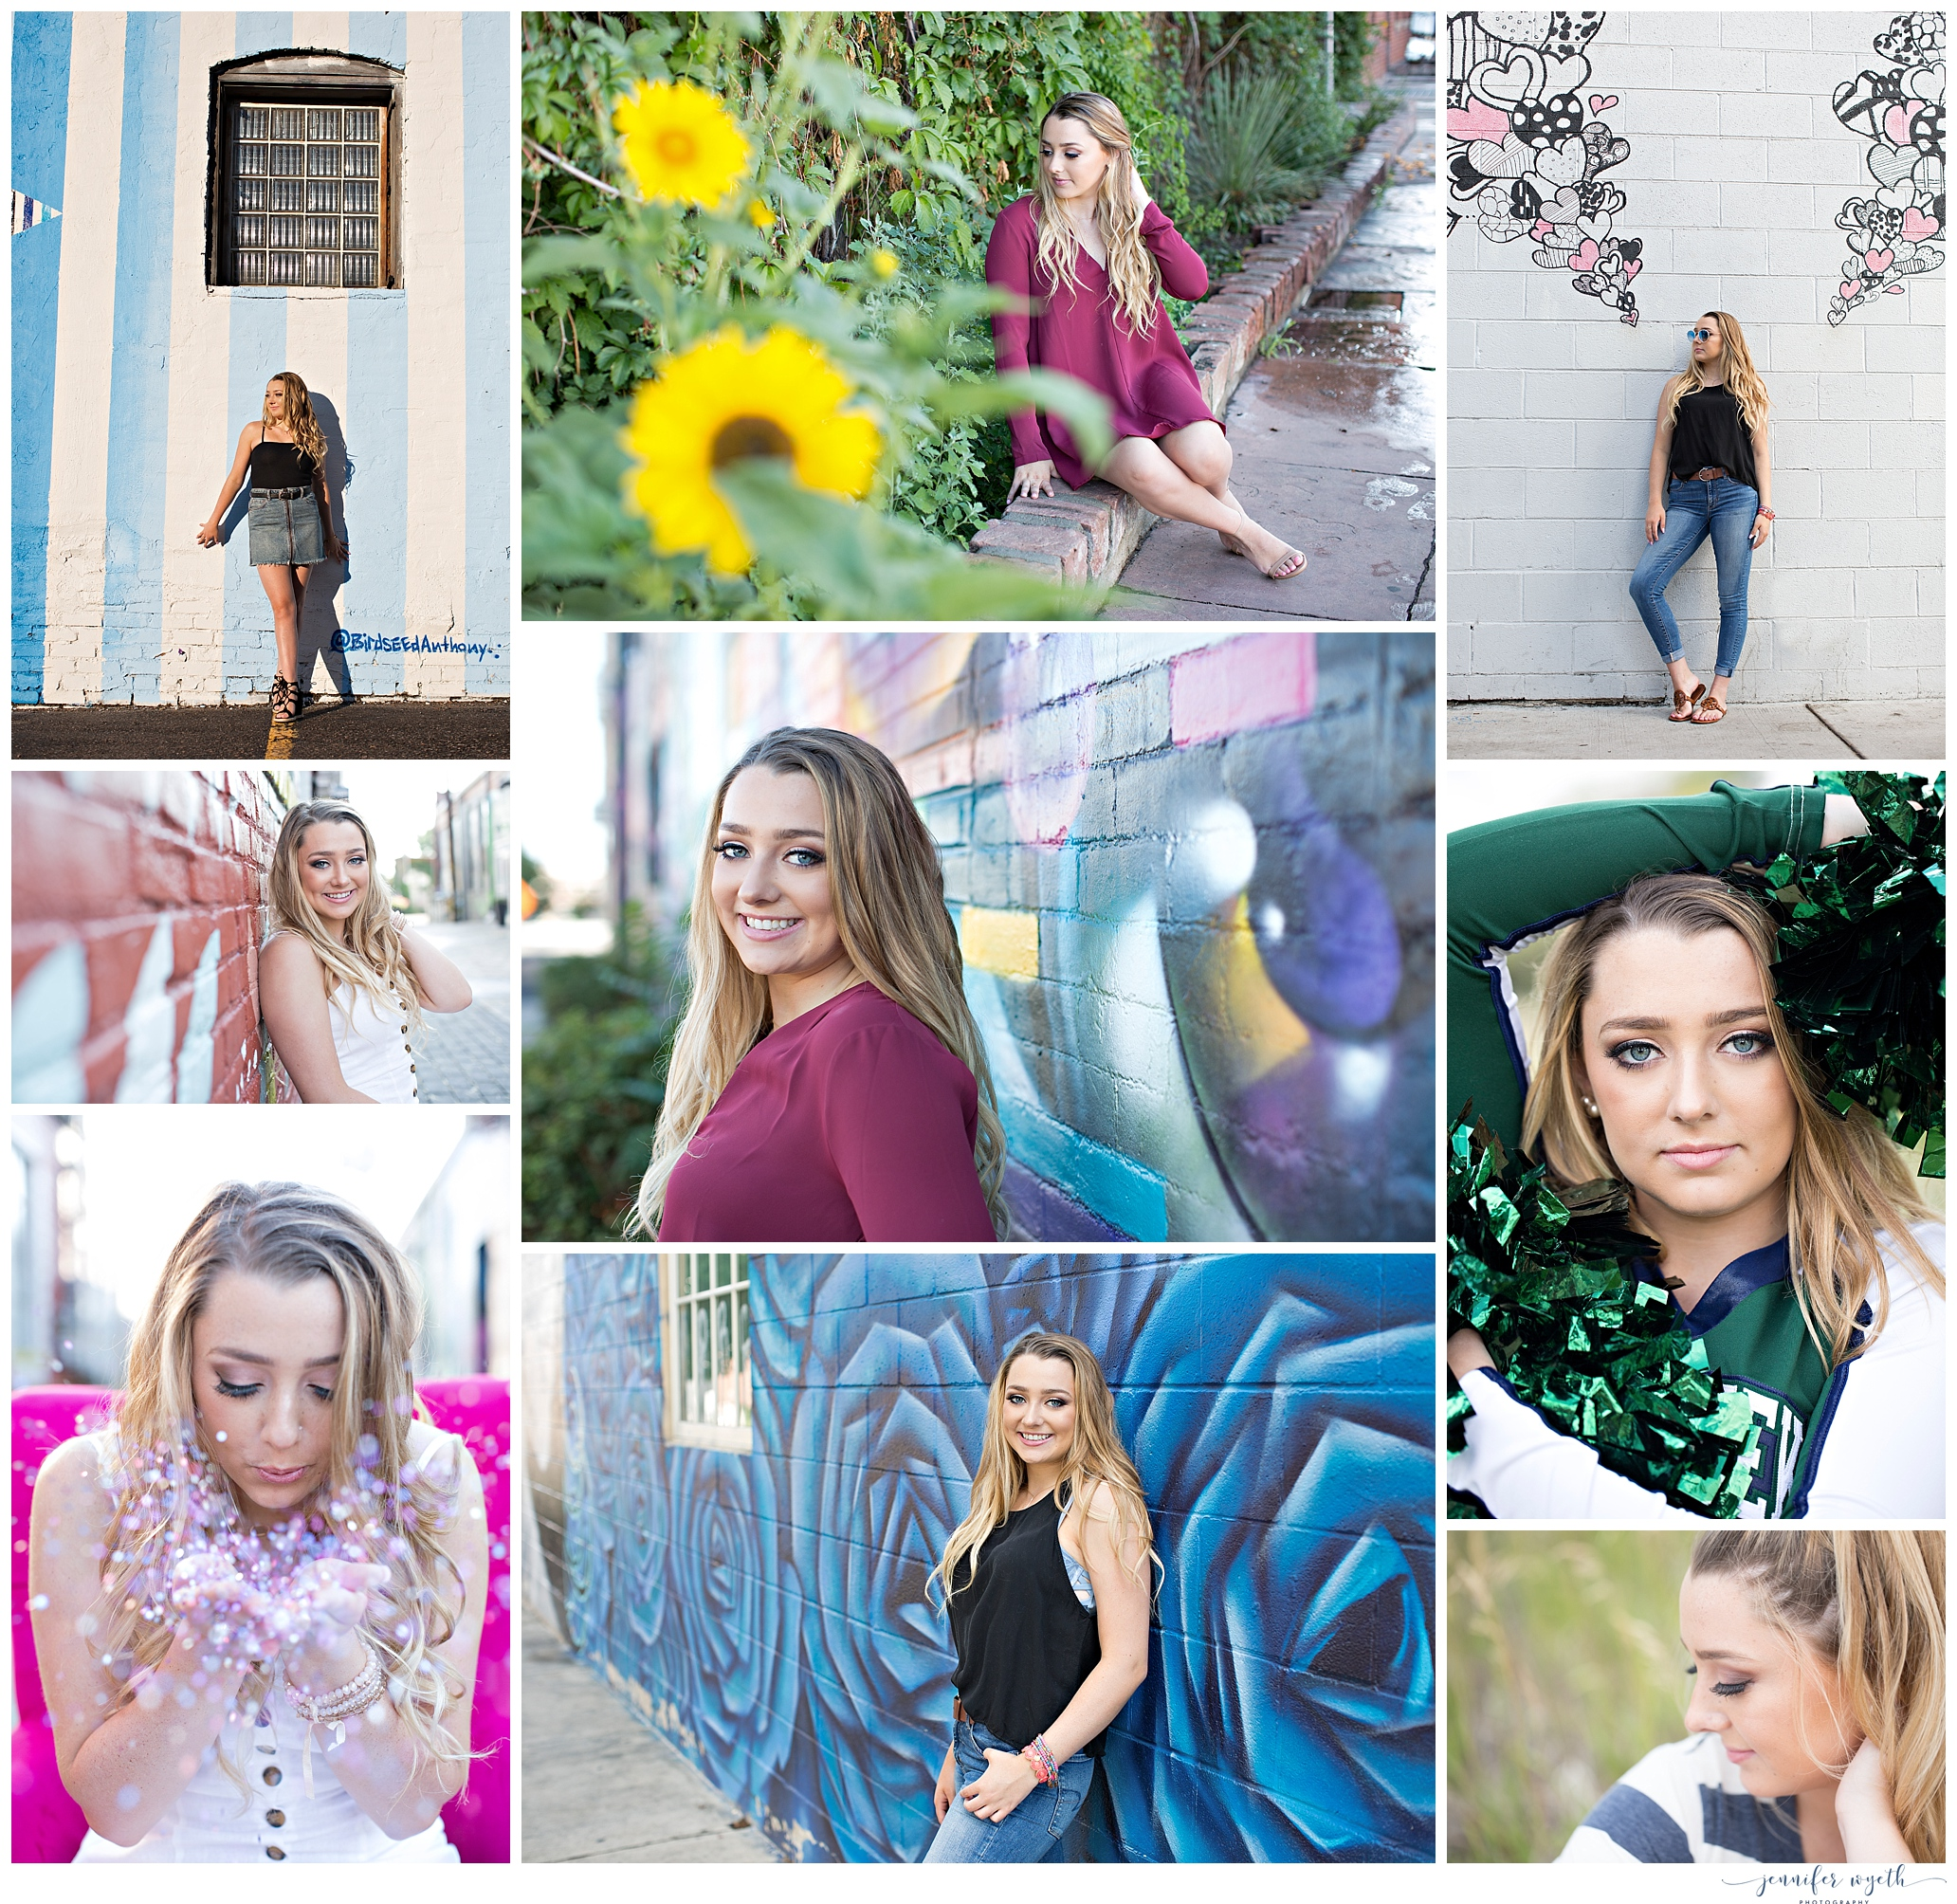 Jennifer-Wyeth-photography-senior-pictures-colorado-springs-photographer_0269.jpg